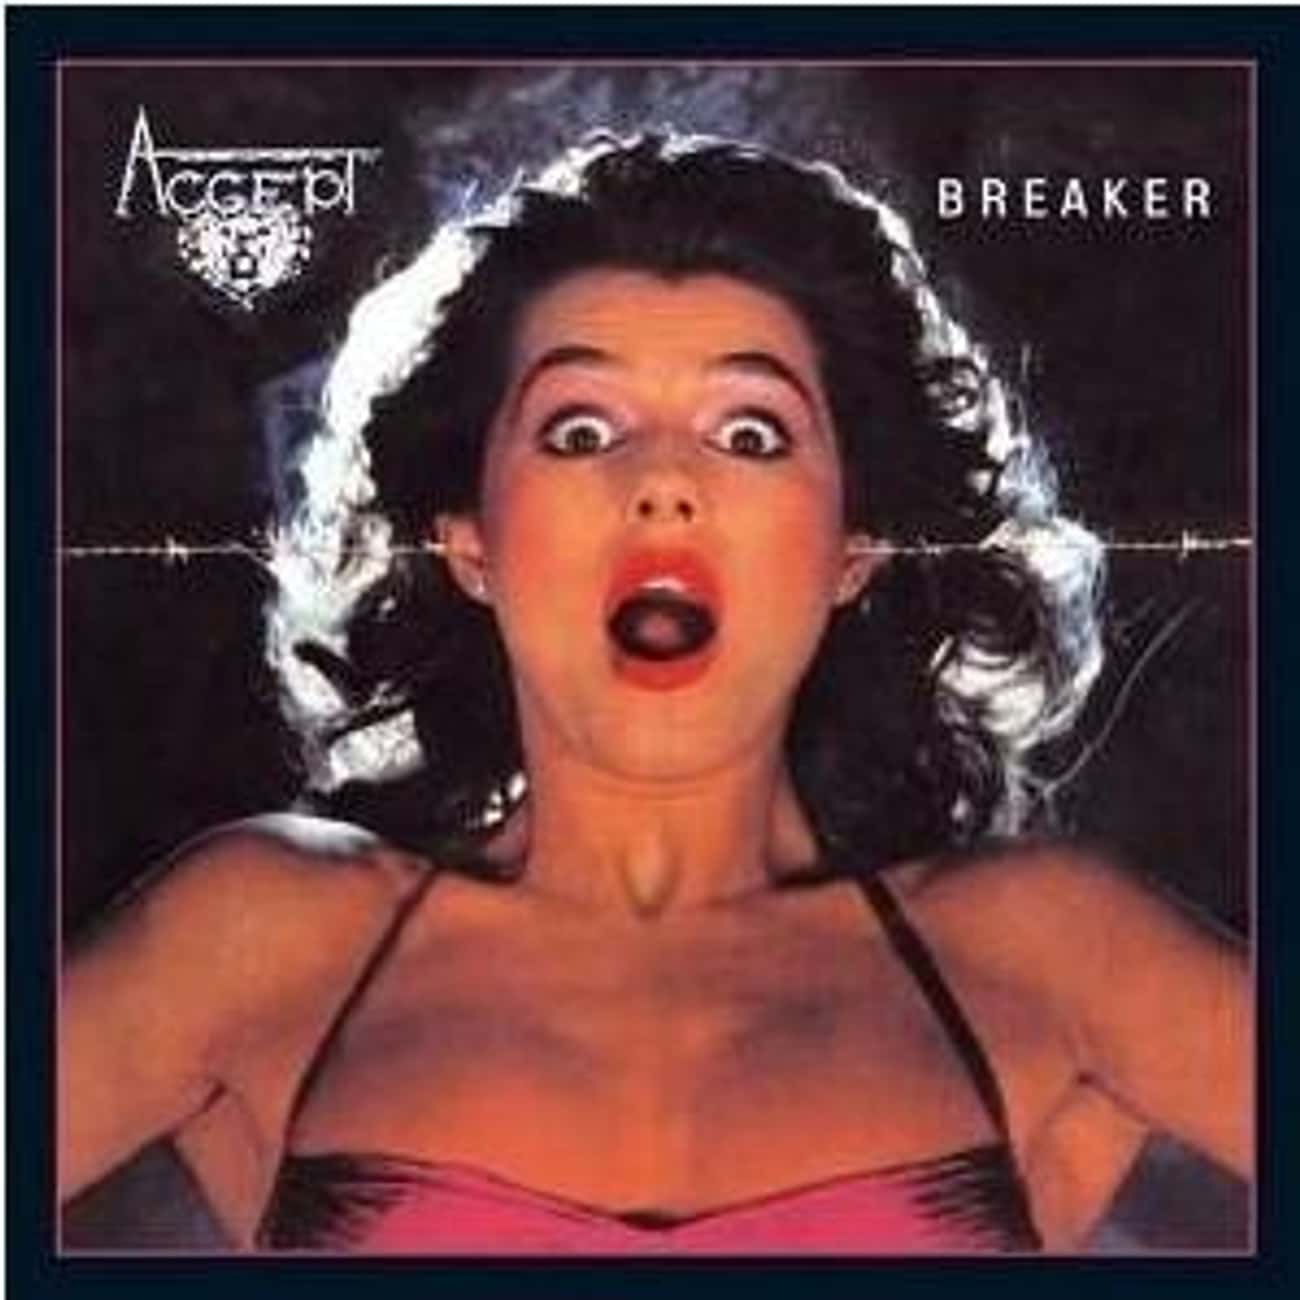 Breaker is listed (or ranked) 4 on the list The Best Accept Albums of All Time